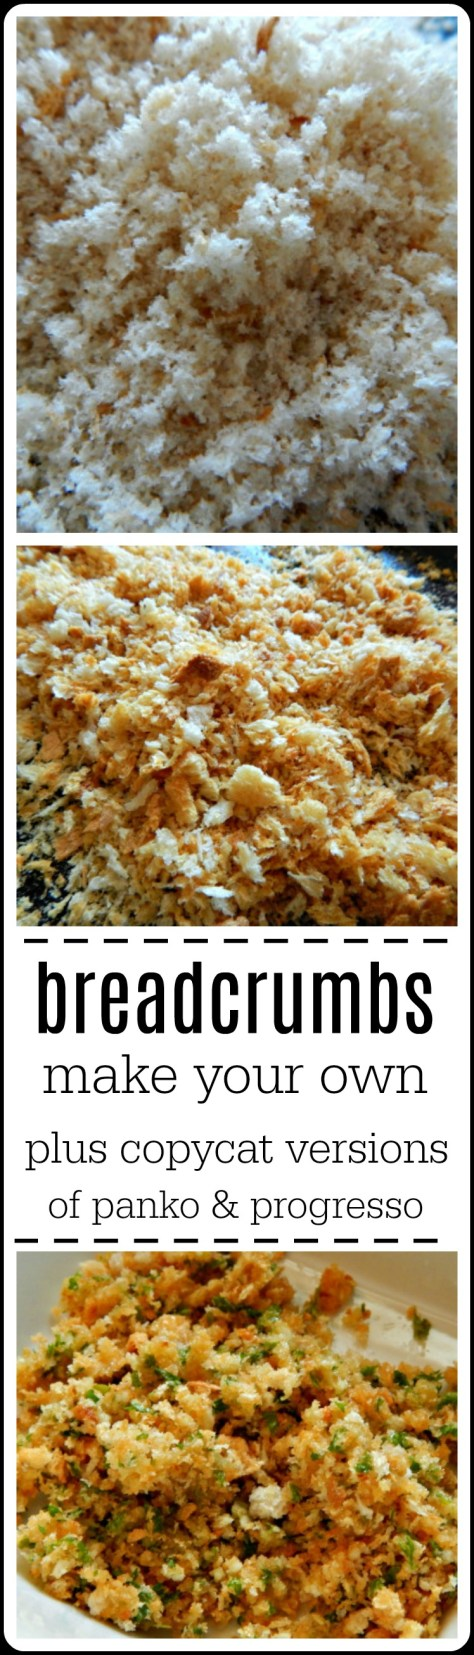 Make breadcrumbs, fresh or toasted, breadcrumb topping for casseroles, plus panko and progressive copycats. Worth a read!